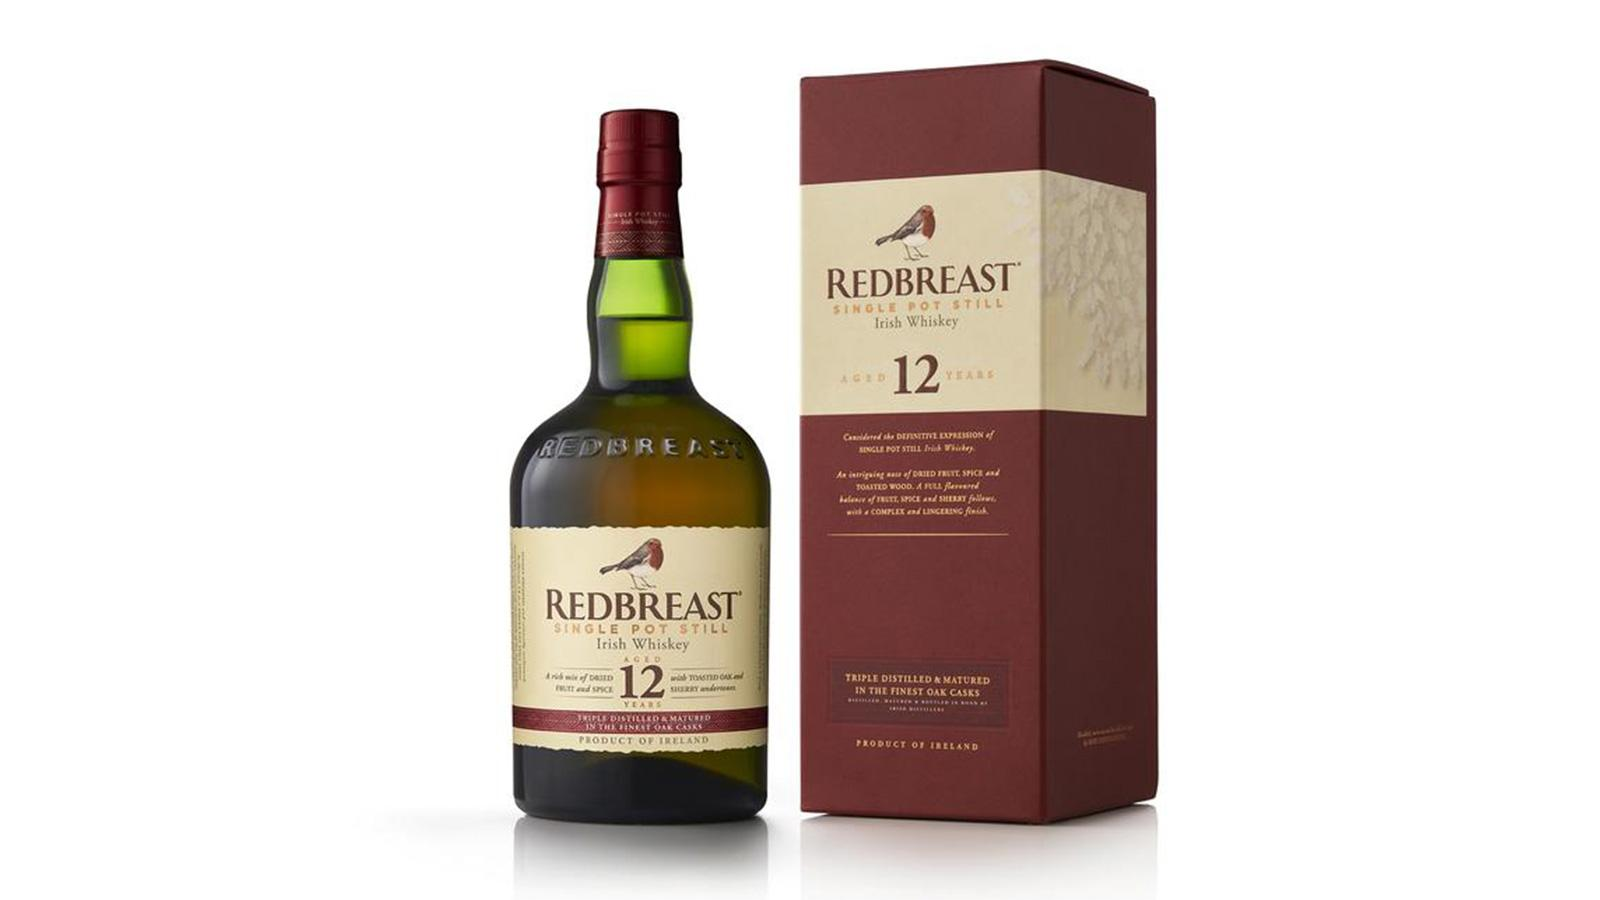 Redbreast Single Pot